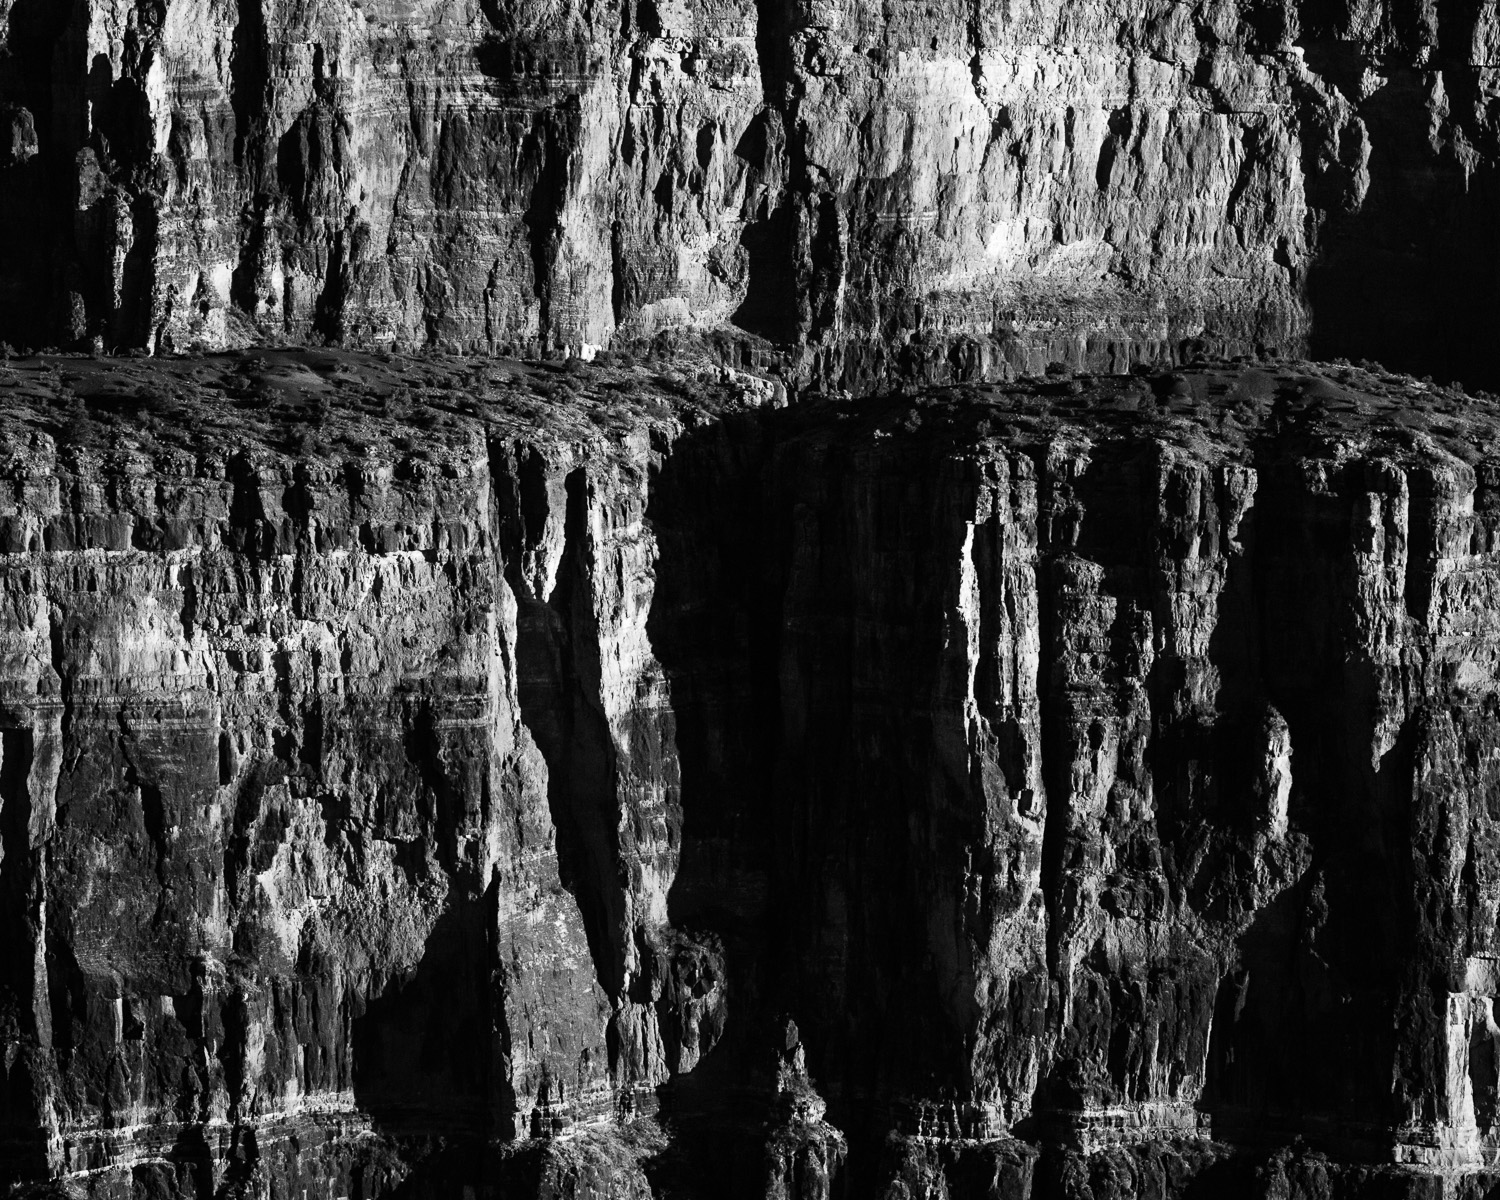 canyons-4